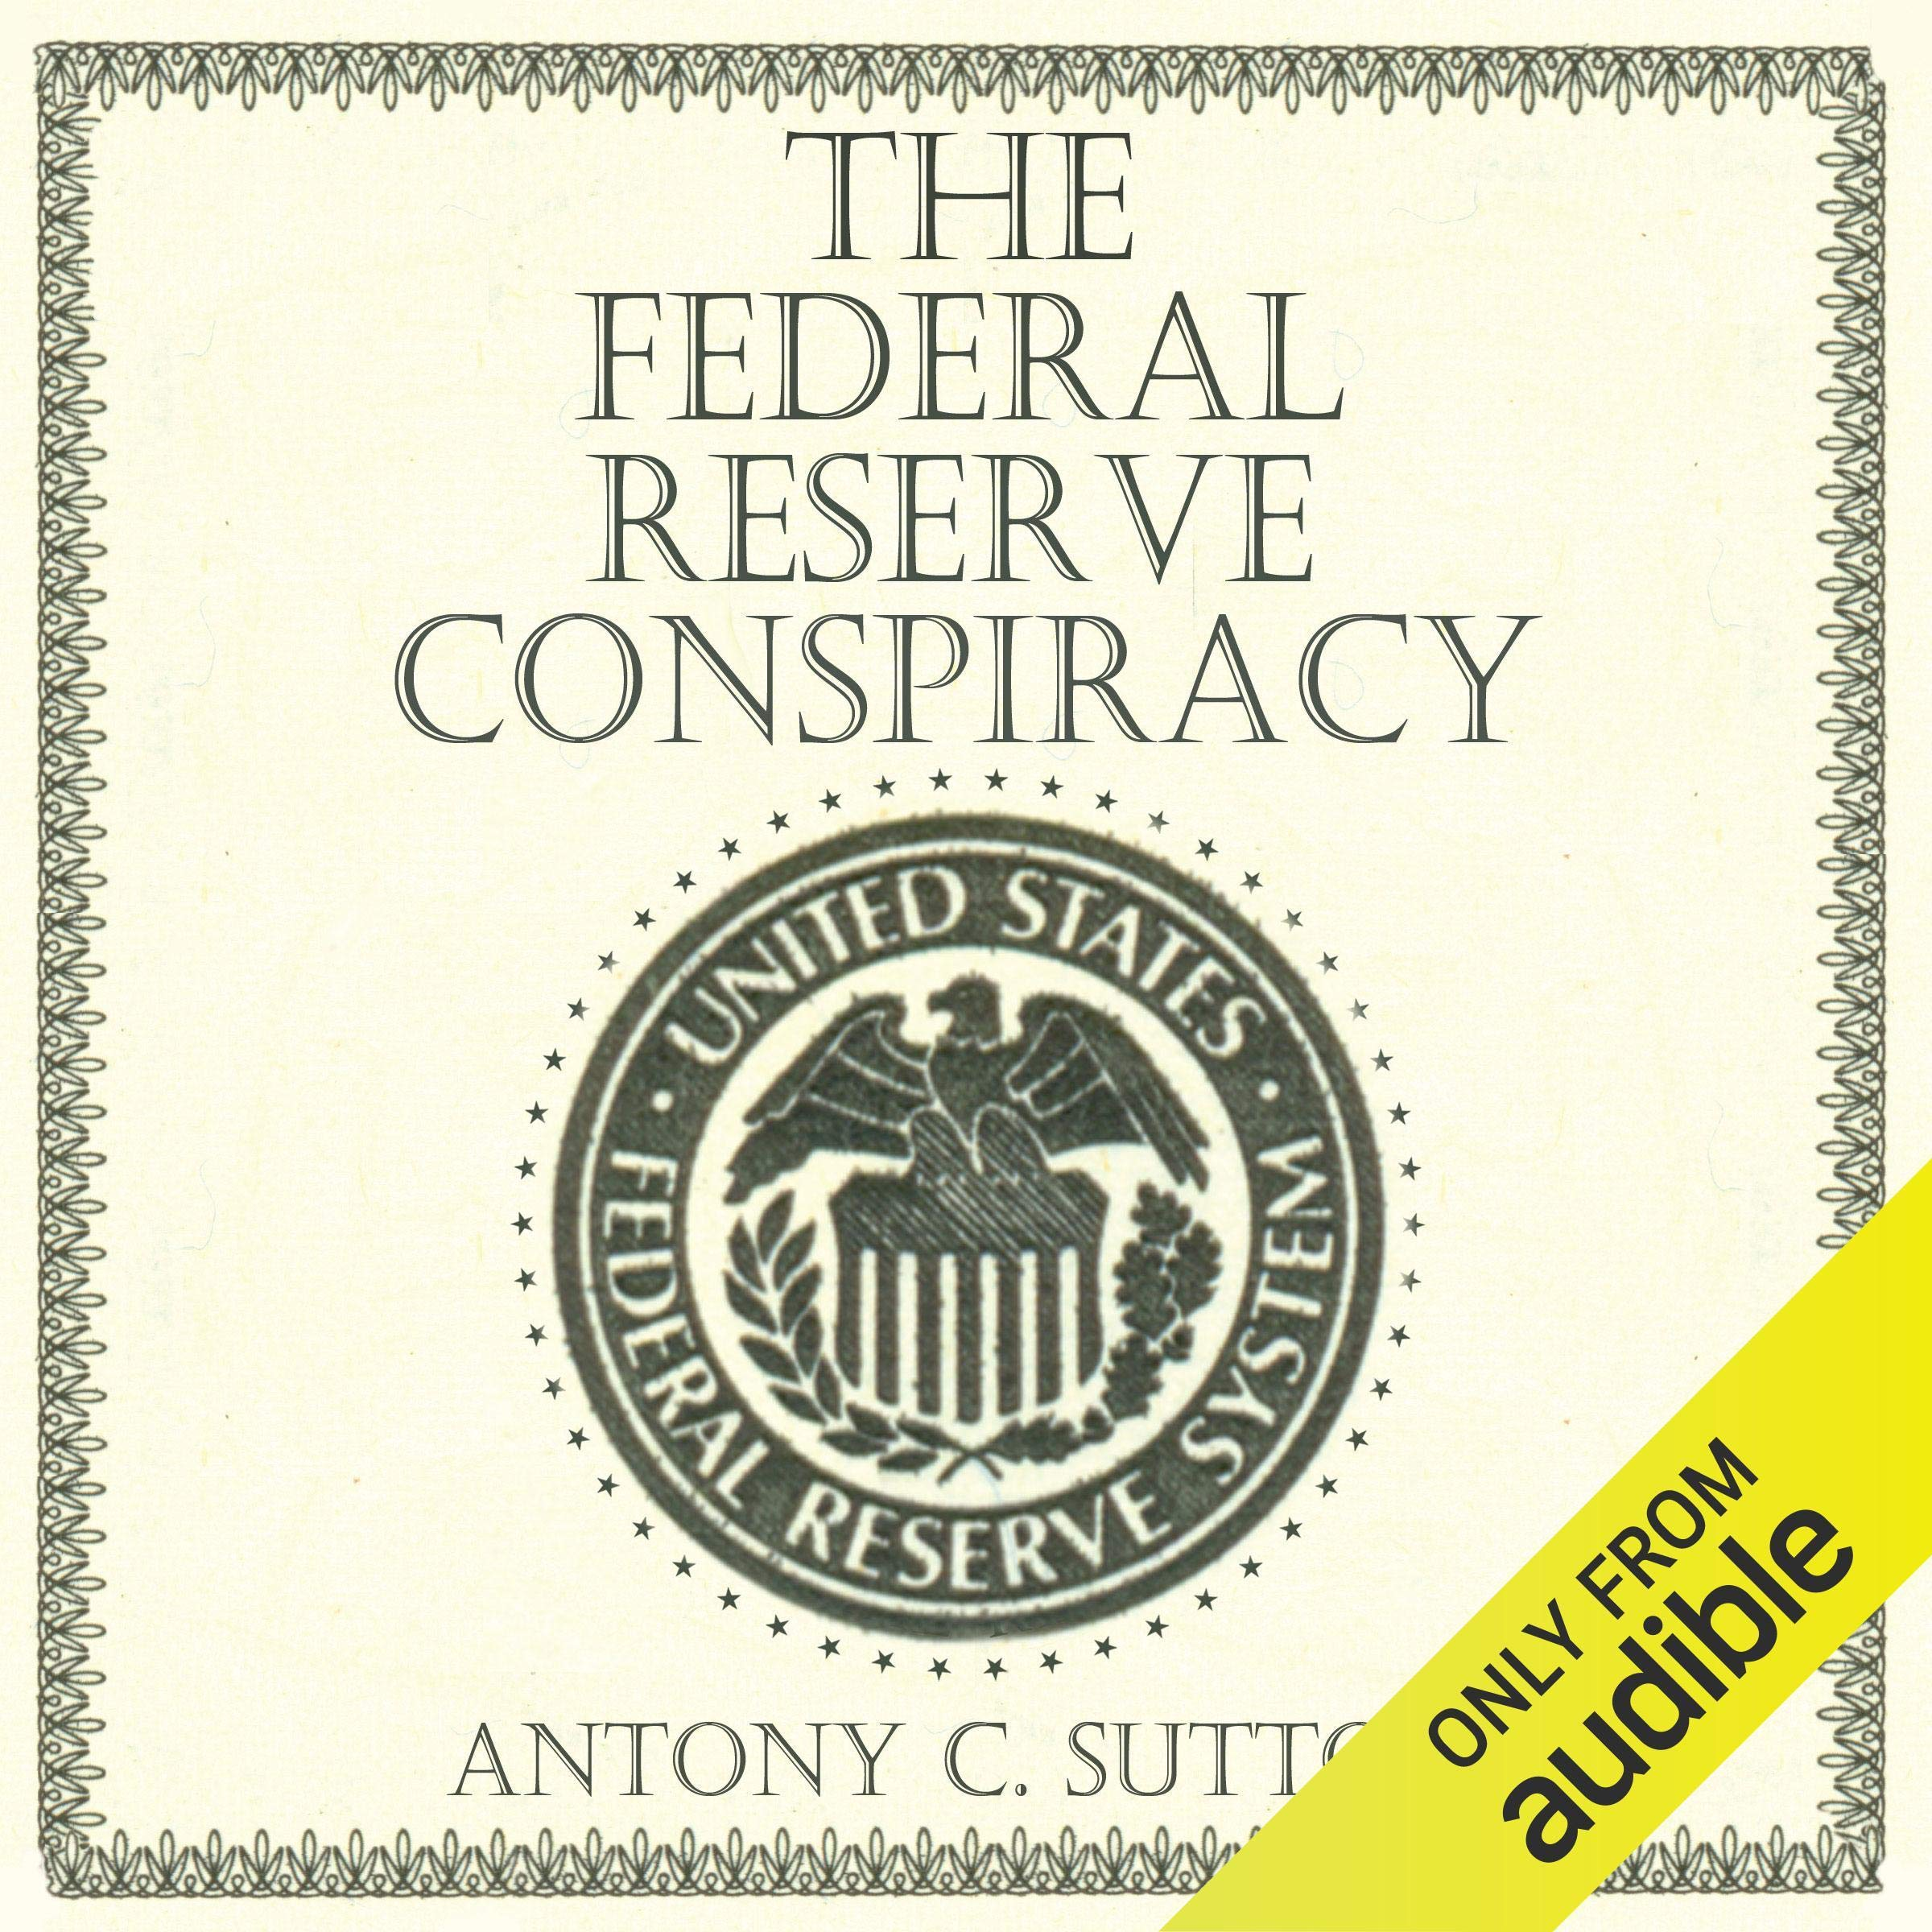 Image OfThe Federal Reserve Conspiracy